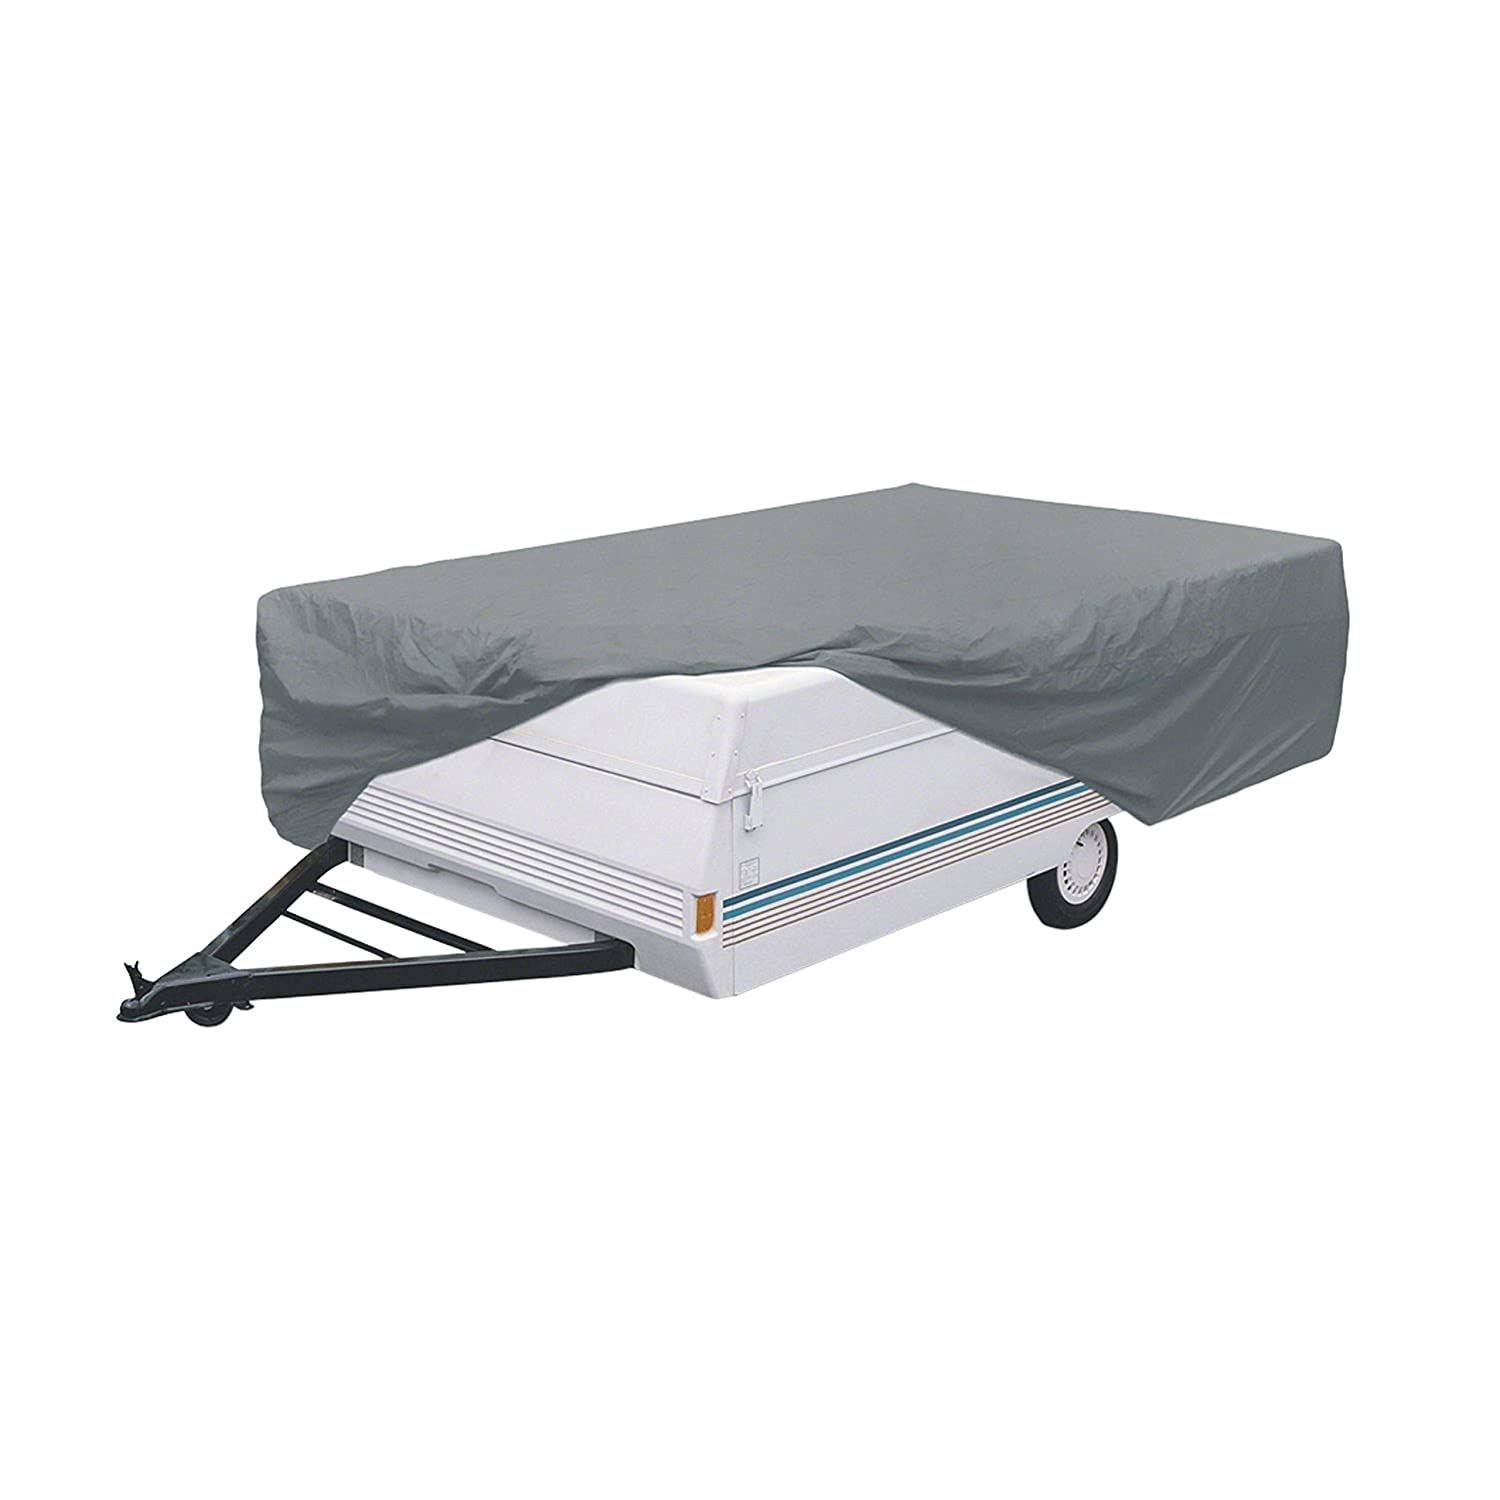 Classic Accessories OverDrive PolyPro 1 Folding Camping Trailer Cover